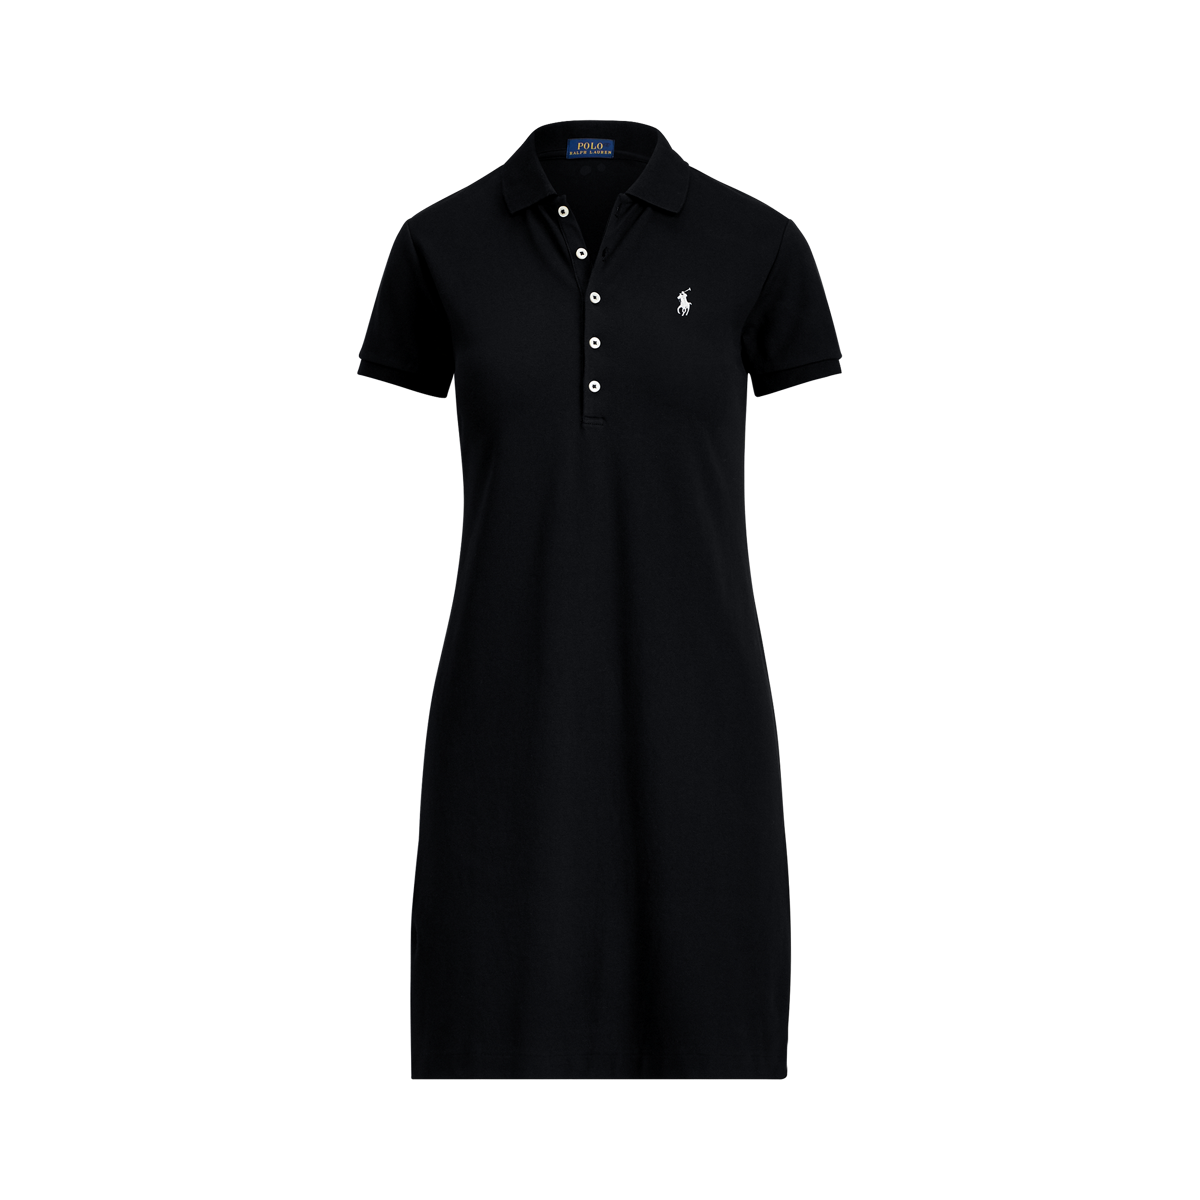 58c07698e Buy Polo Dress Shirts Online